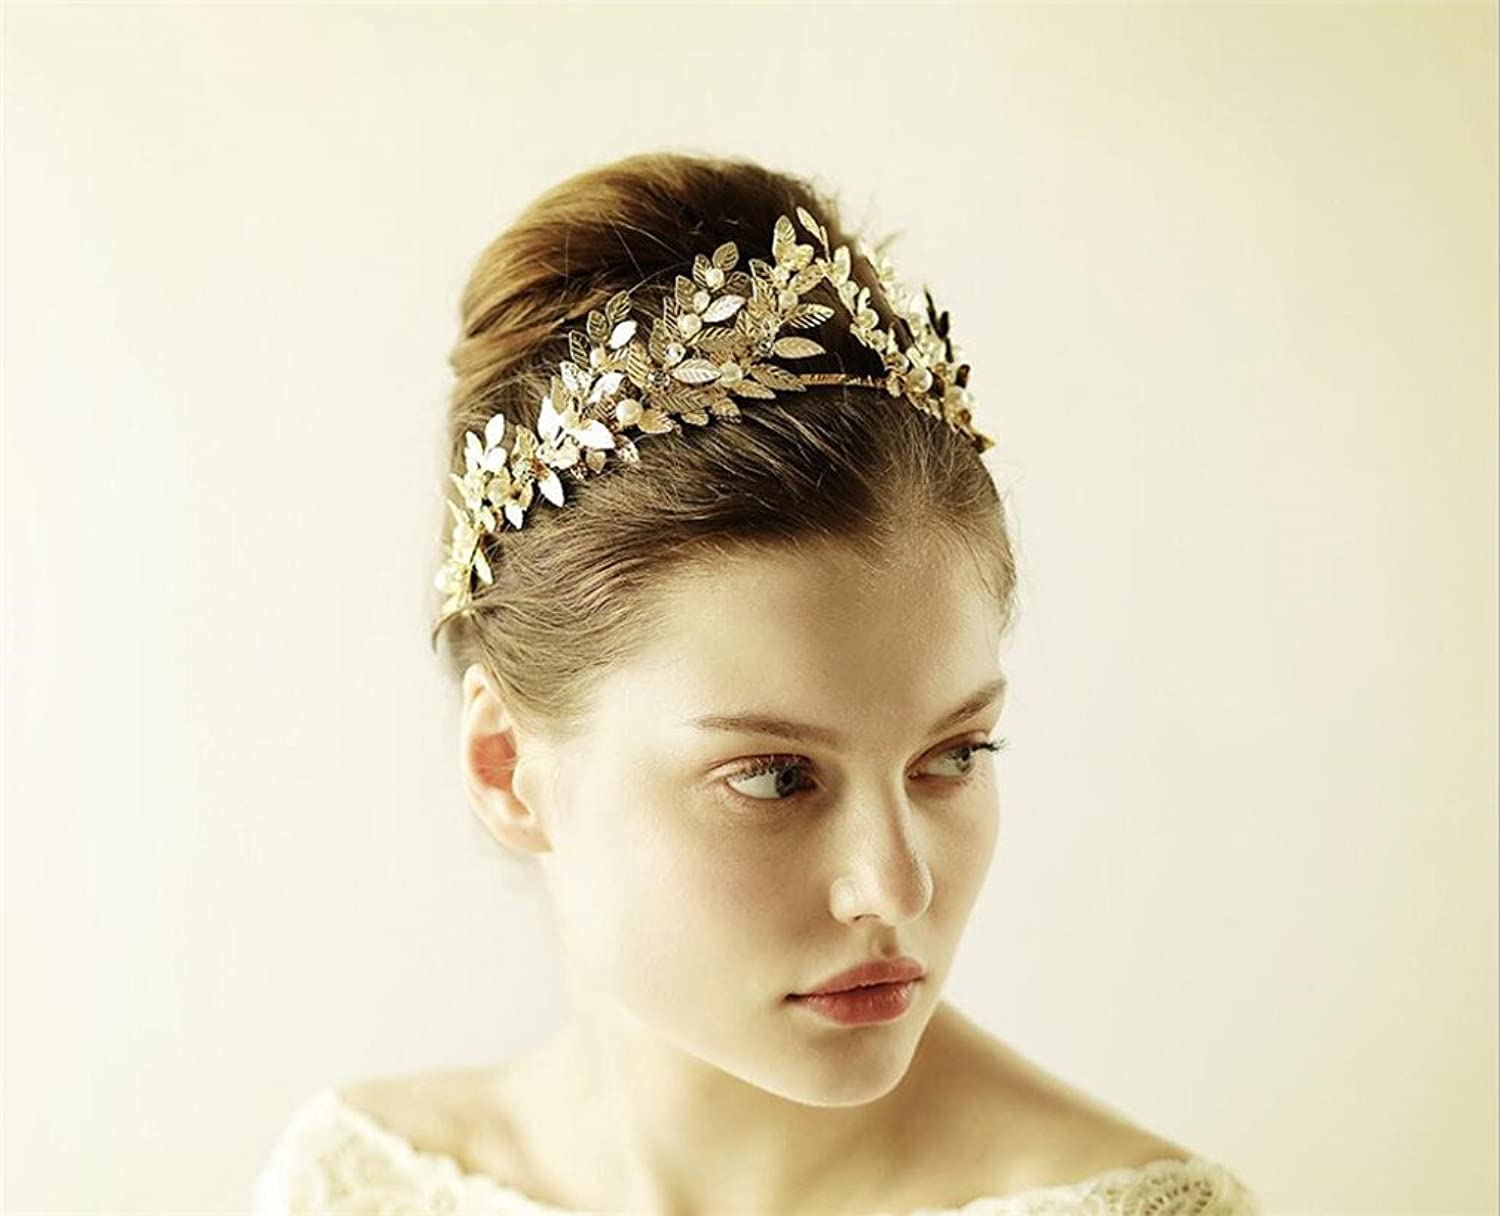 Bridal Crown,Wedding Crystal Hair Pins with Beads and Rhinestones Bridal Headpieces Accessories for Bride Bridesmaid